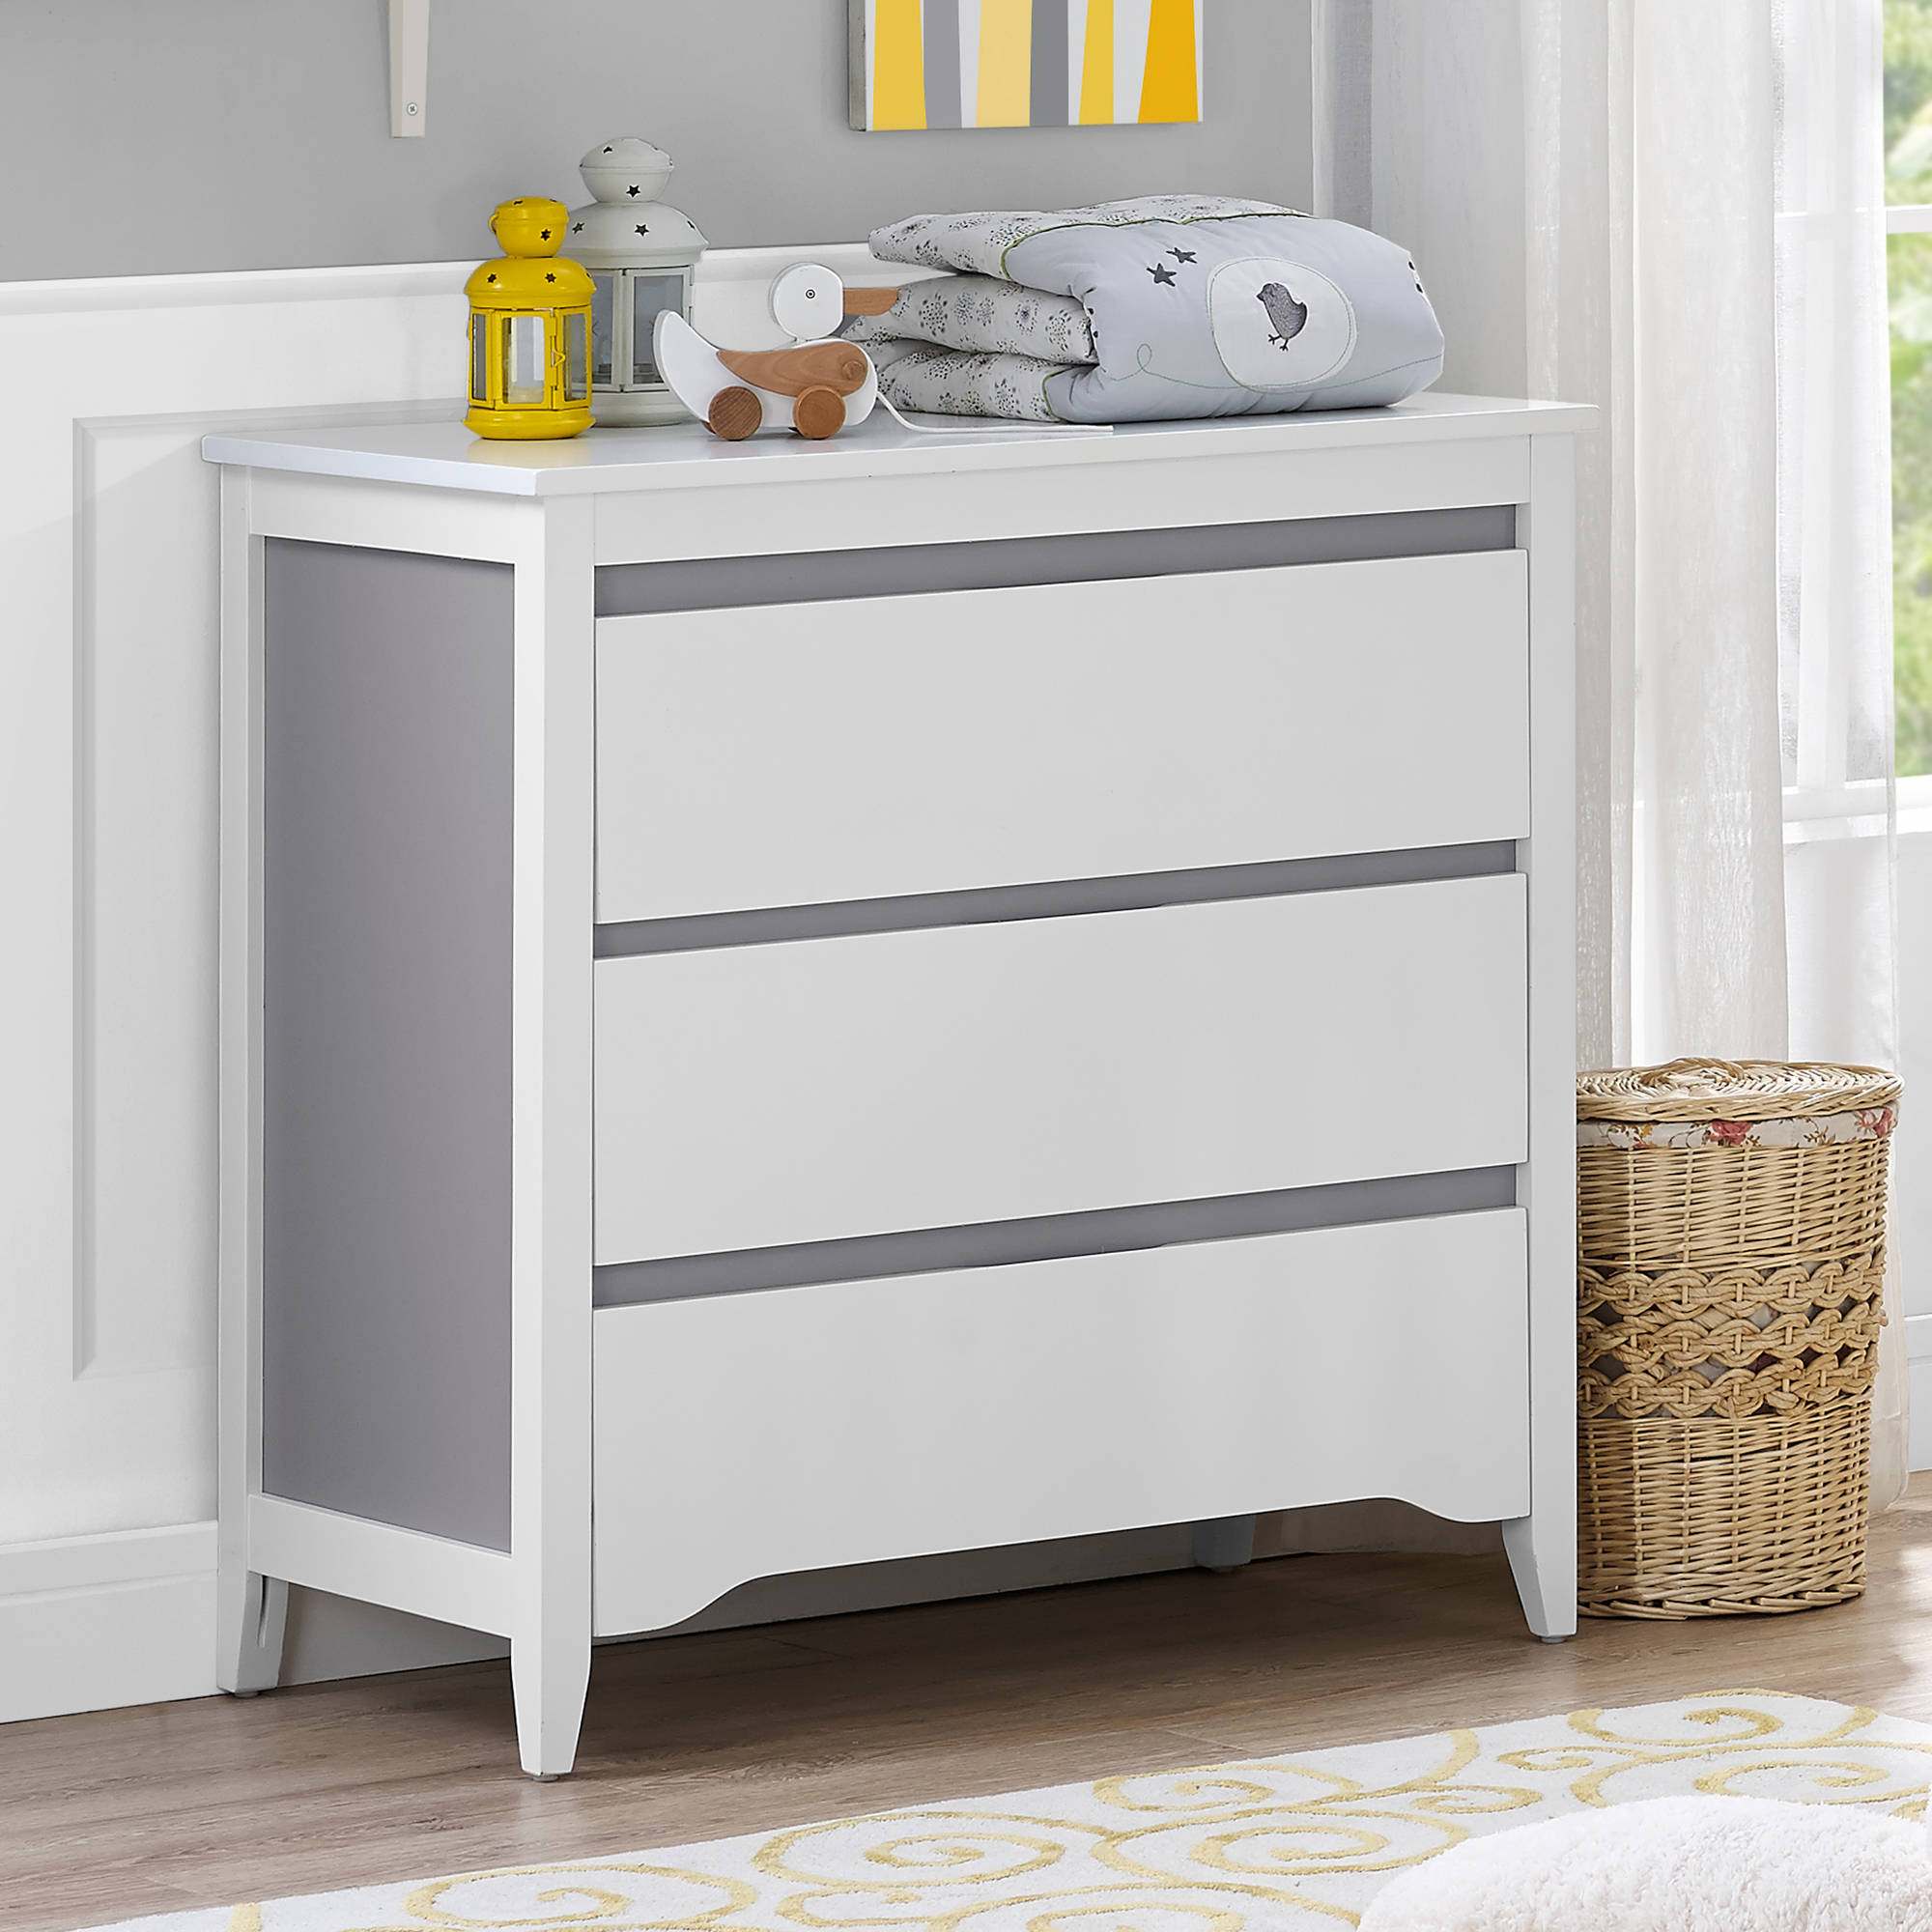 slim drawer white inch one wood bedroom wide of furniture basic tall thin shaker for style small pine dresser chest drawers sale